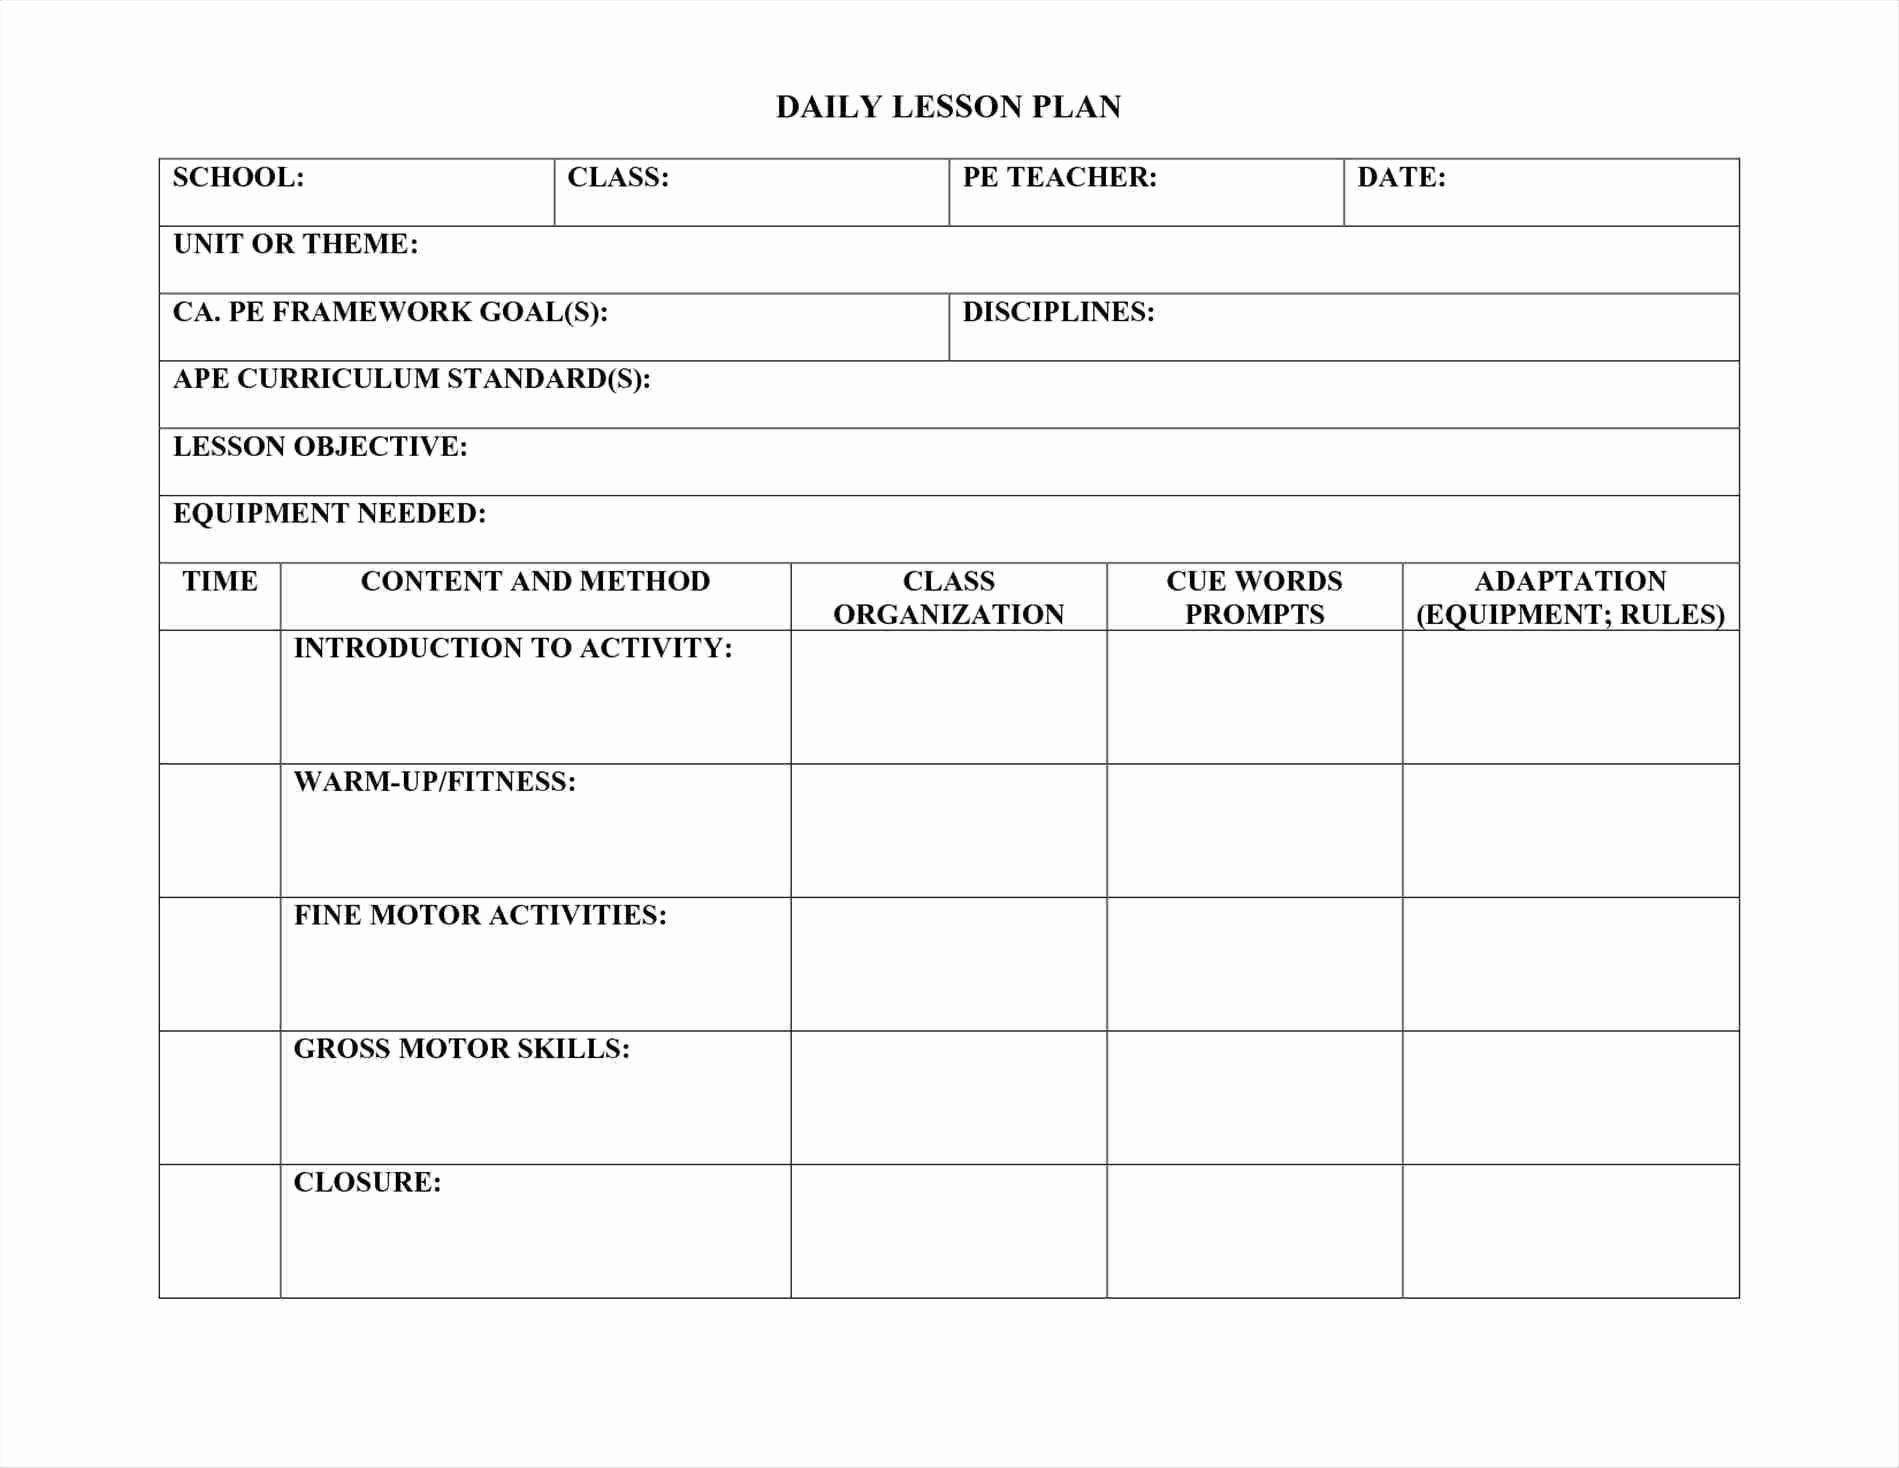 Weekly Lesson Plan Template Elementary Awesome Pin by Joanna Keysa On Free Tamplate